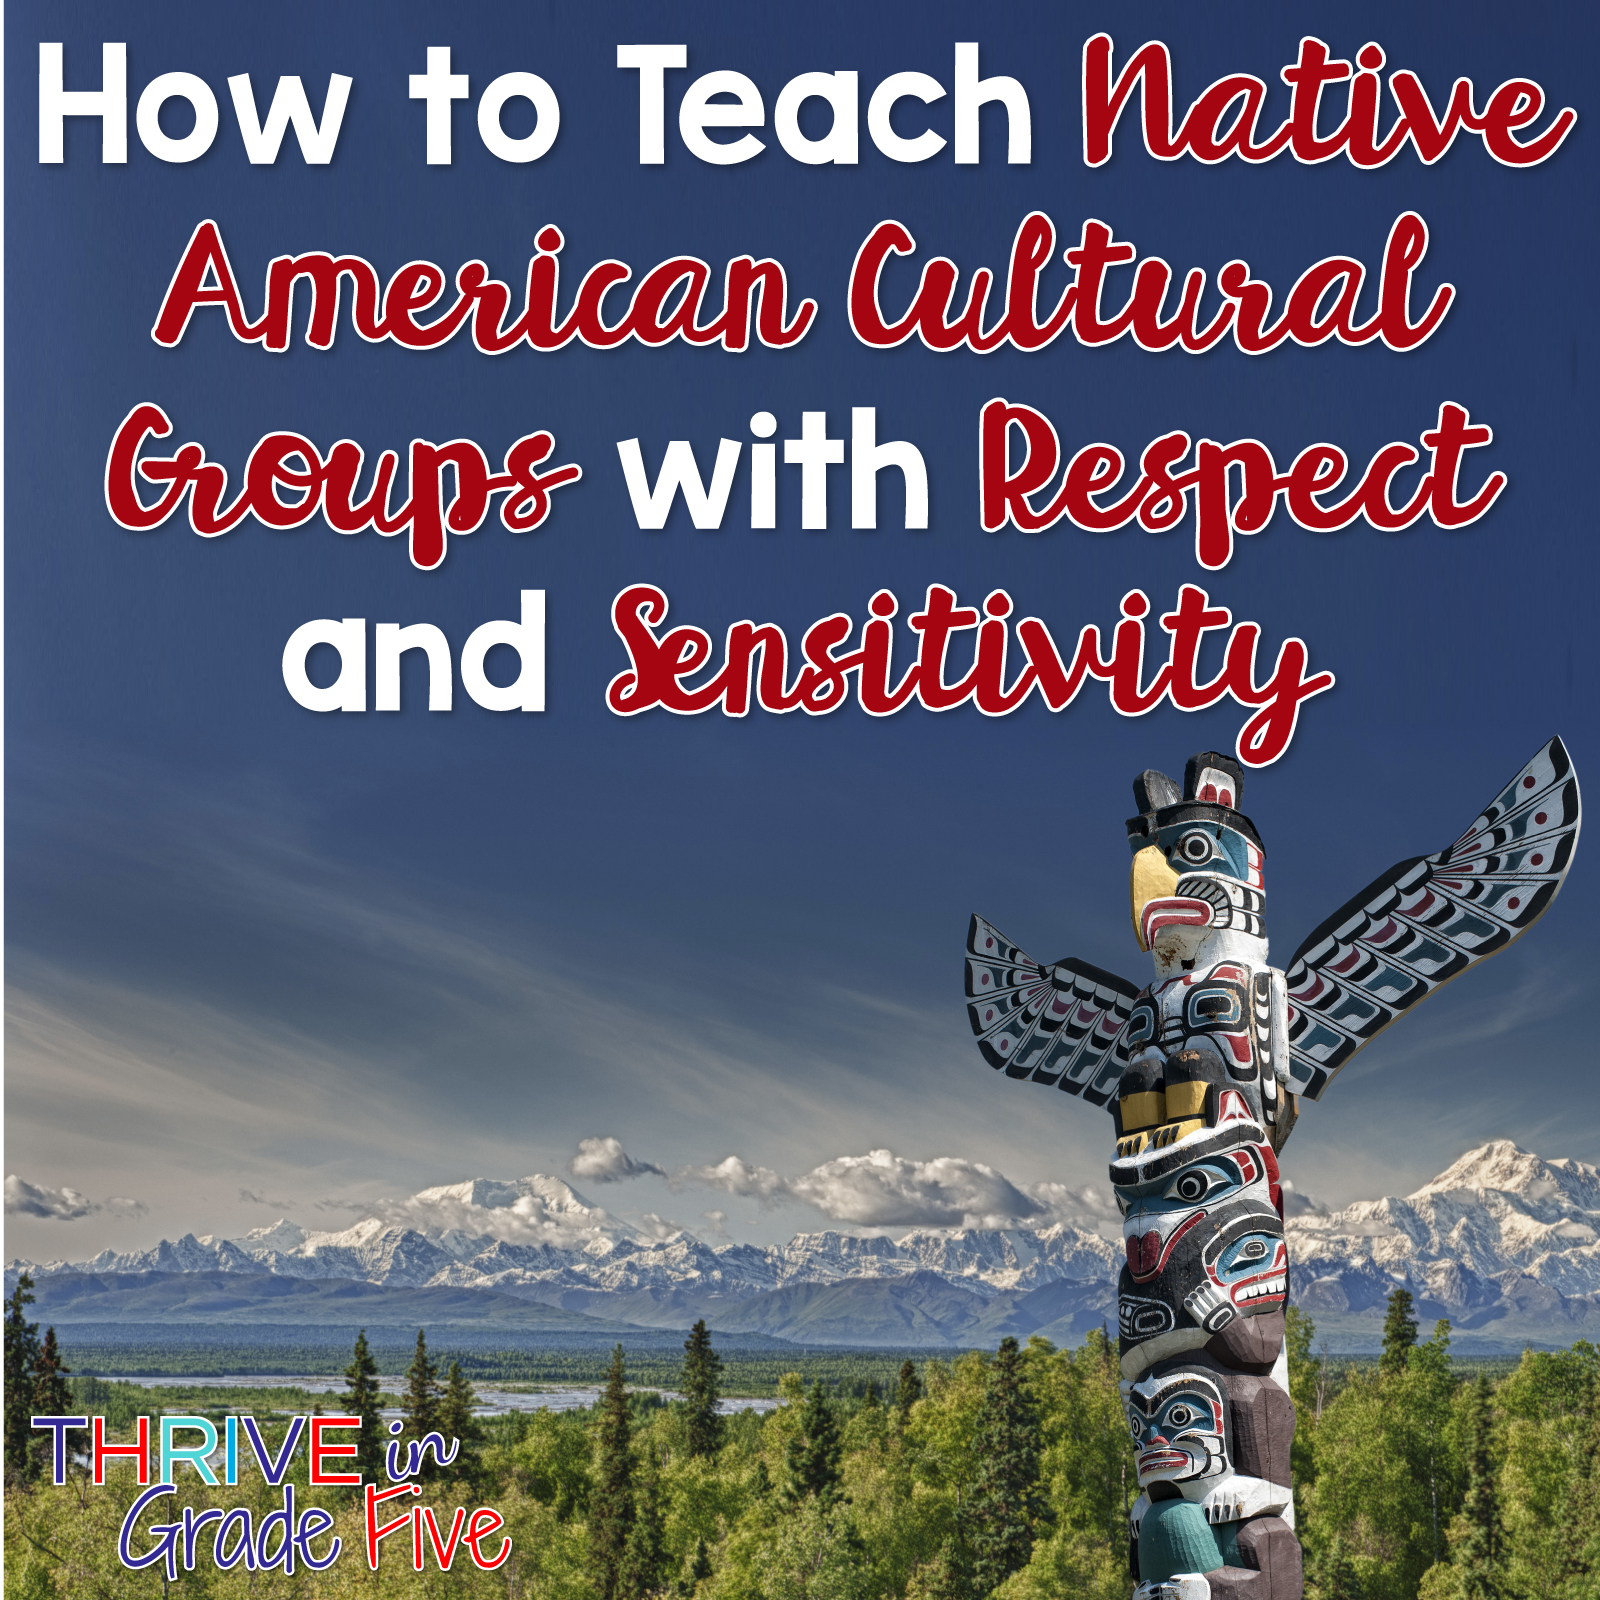 Teaching About Native American Cultural Groups With